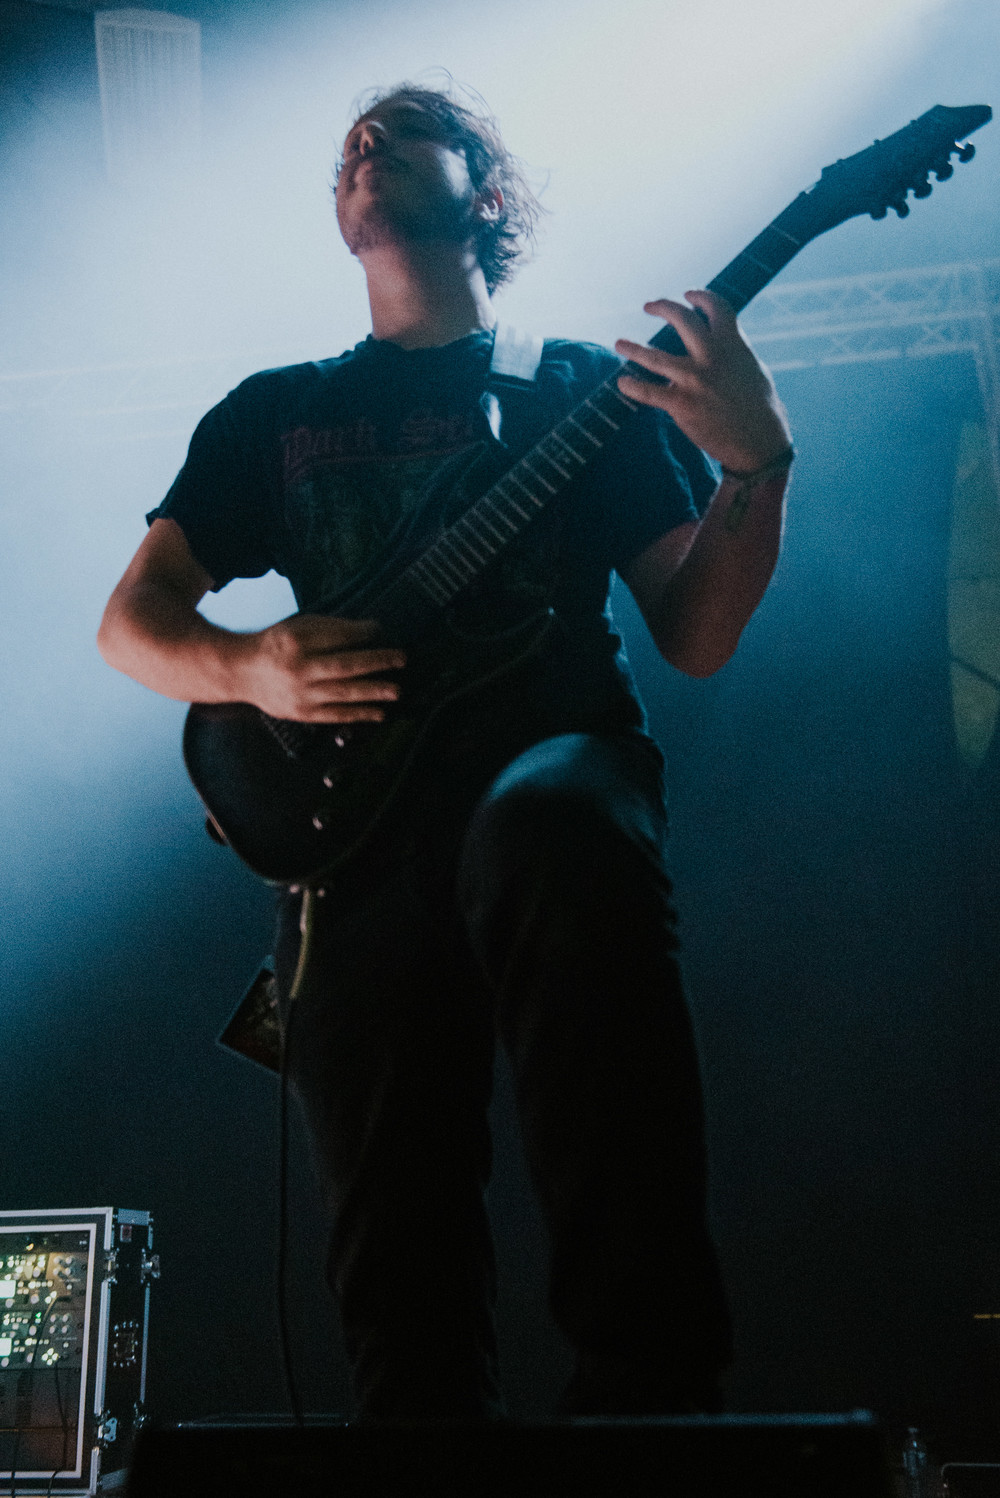 9_Rivers_Of_Nihil_Armstrong_Festival_Timothy_Nguyen_20160716 (3 of 11).jpg